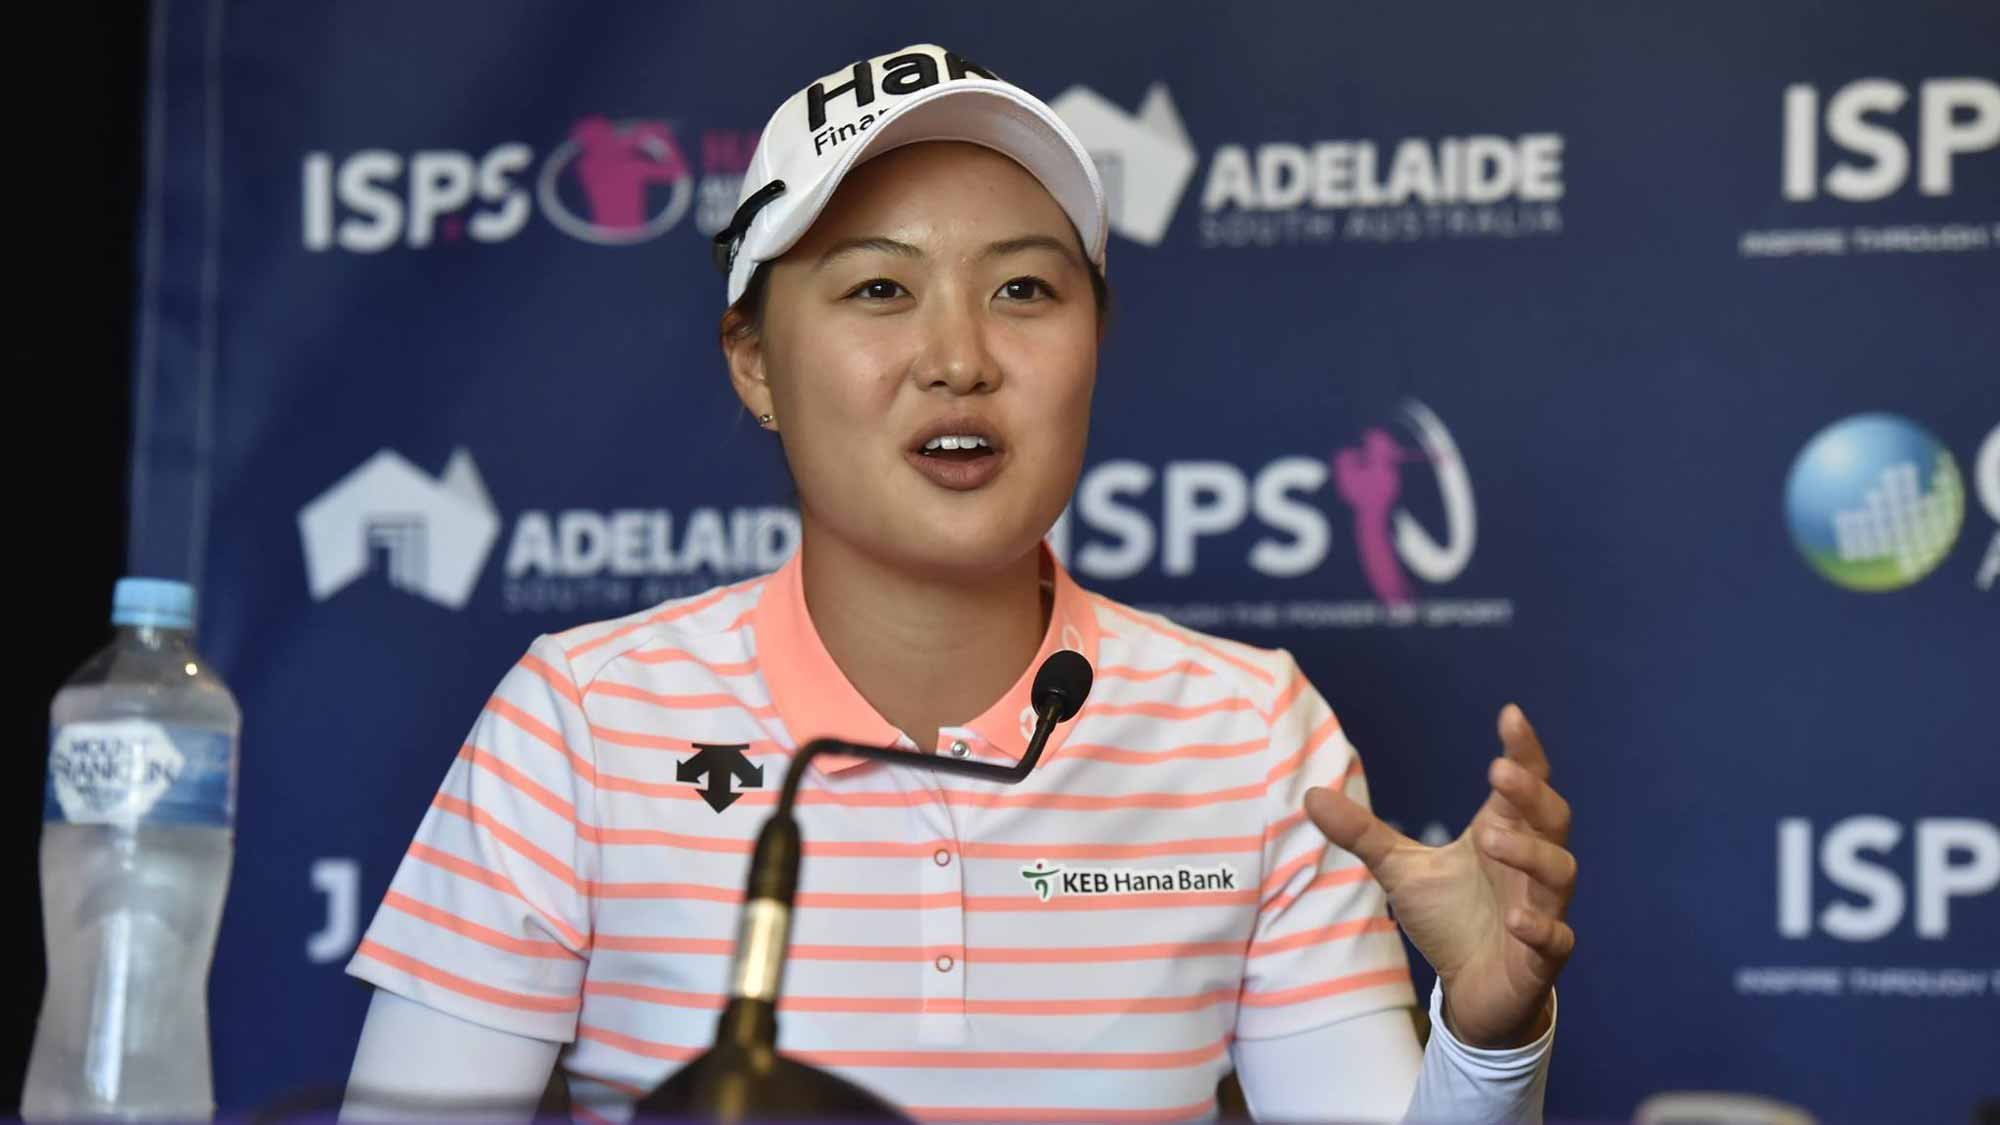 Minjee Lee during her Pre-Tournament Press Conference at the ISPS Handa Women's Australian Open